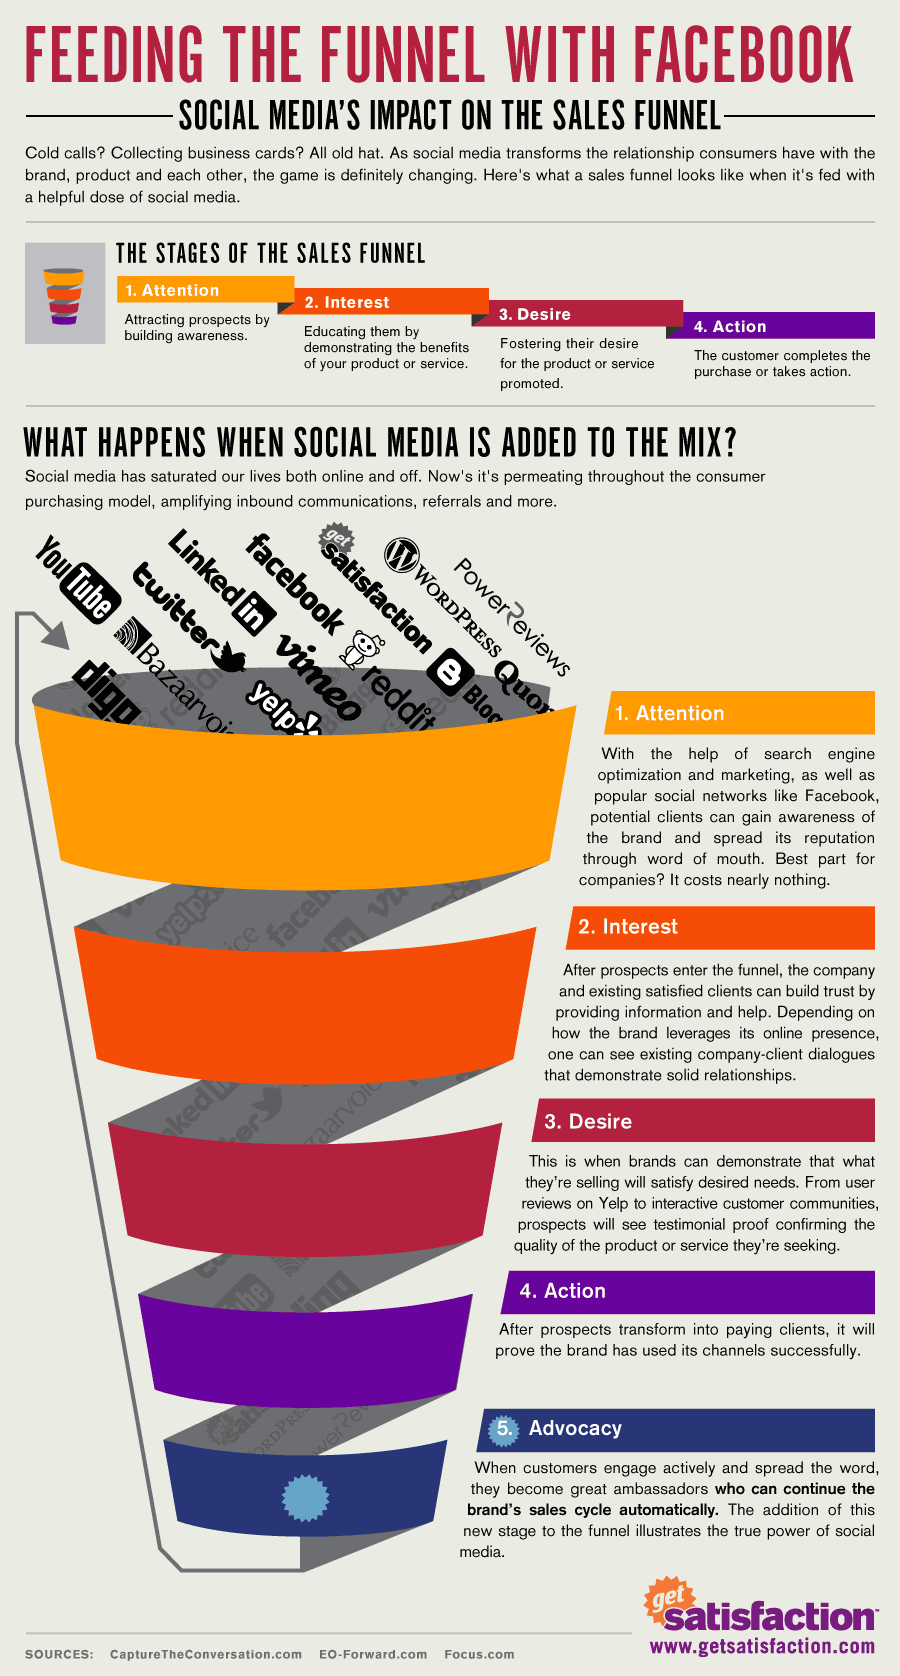 Feeding the funnel with Facebook (infographic) - State of ... | 900 x 1676 png 448kB